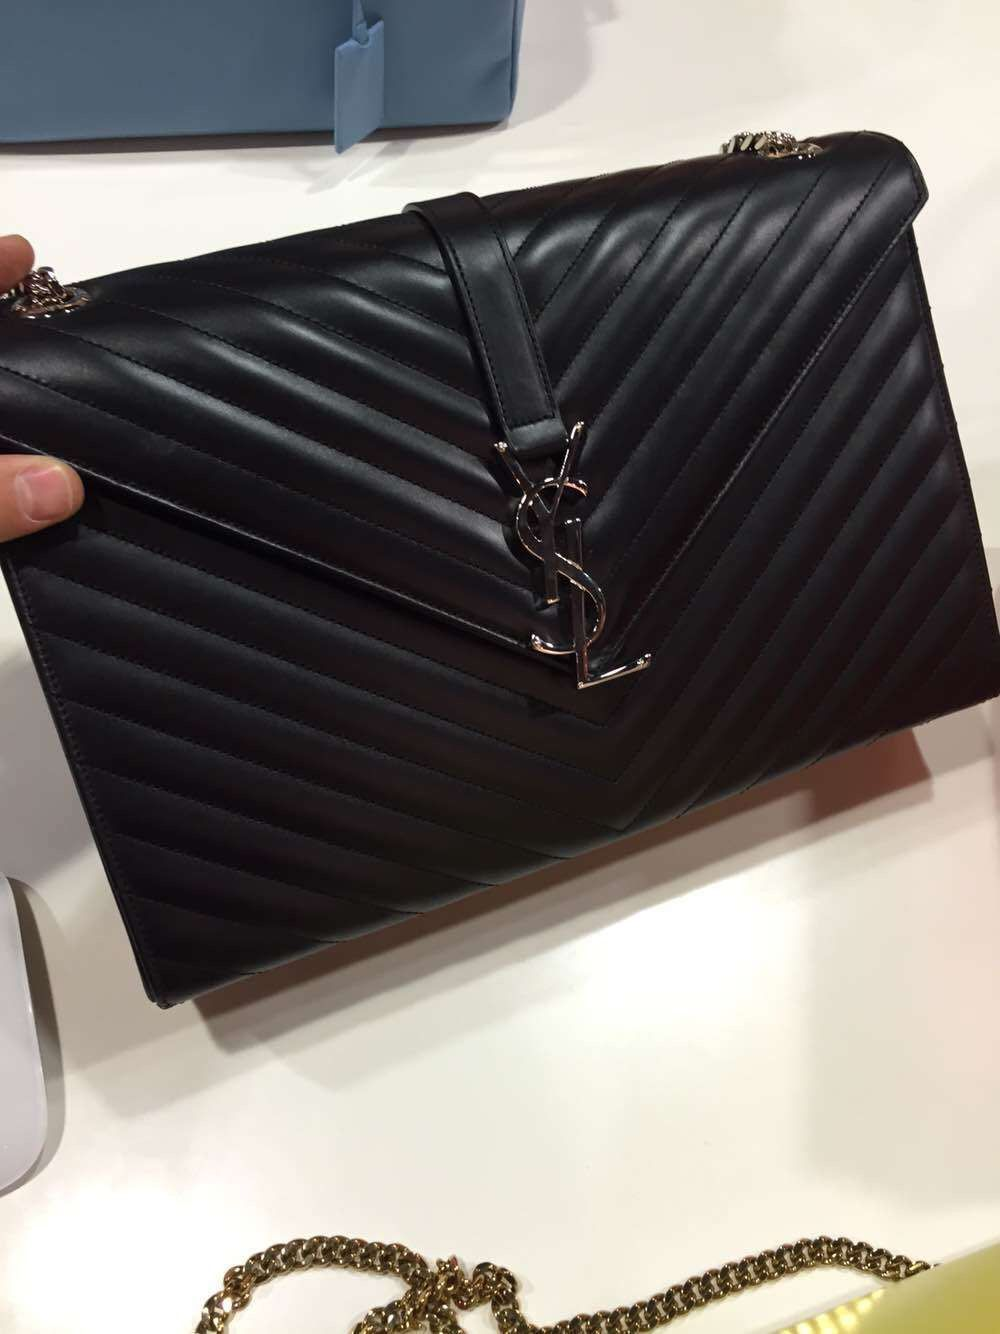 8a87a575acb8 The new ysl monogram clutch will hit the shops in summer and will surely be  producing a buzz in a society of handbag lovers. It s packed completely of  ...